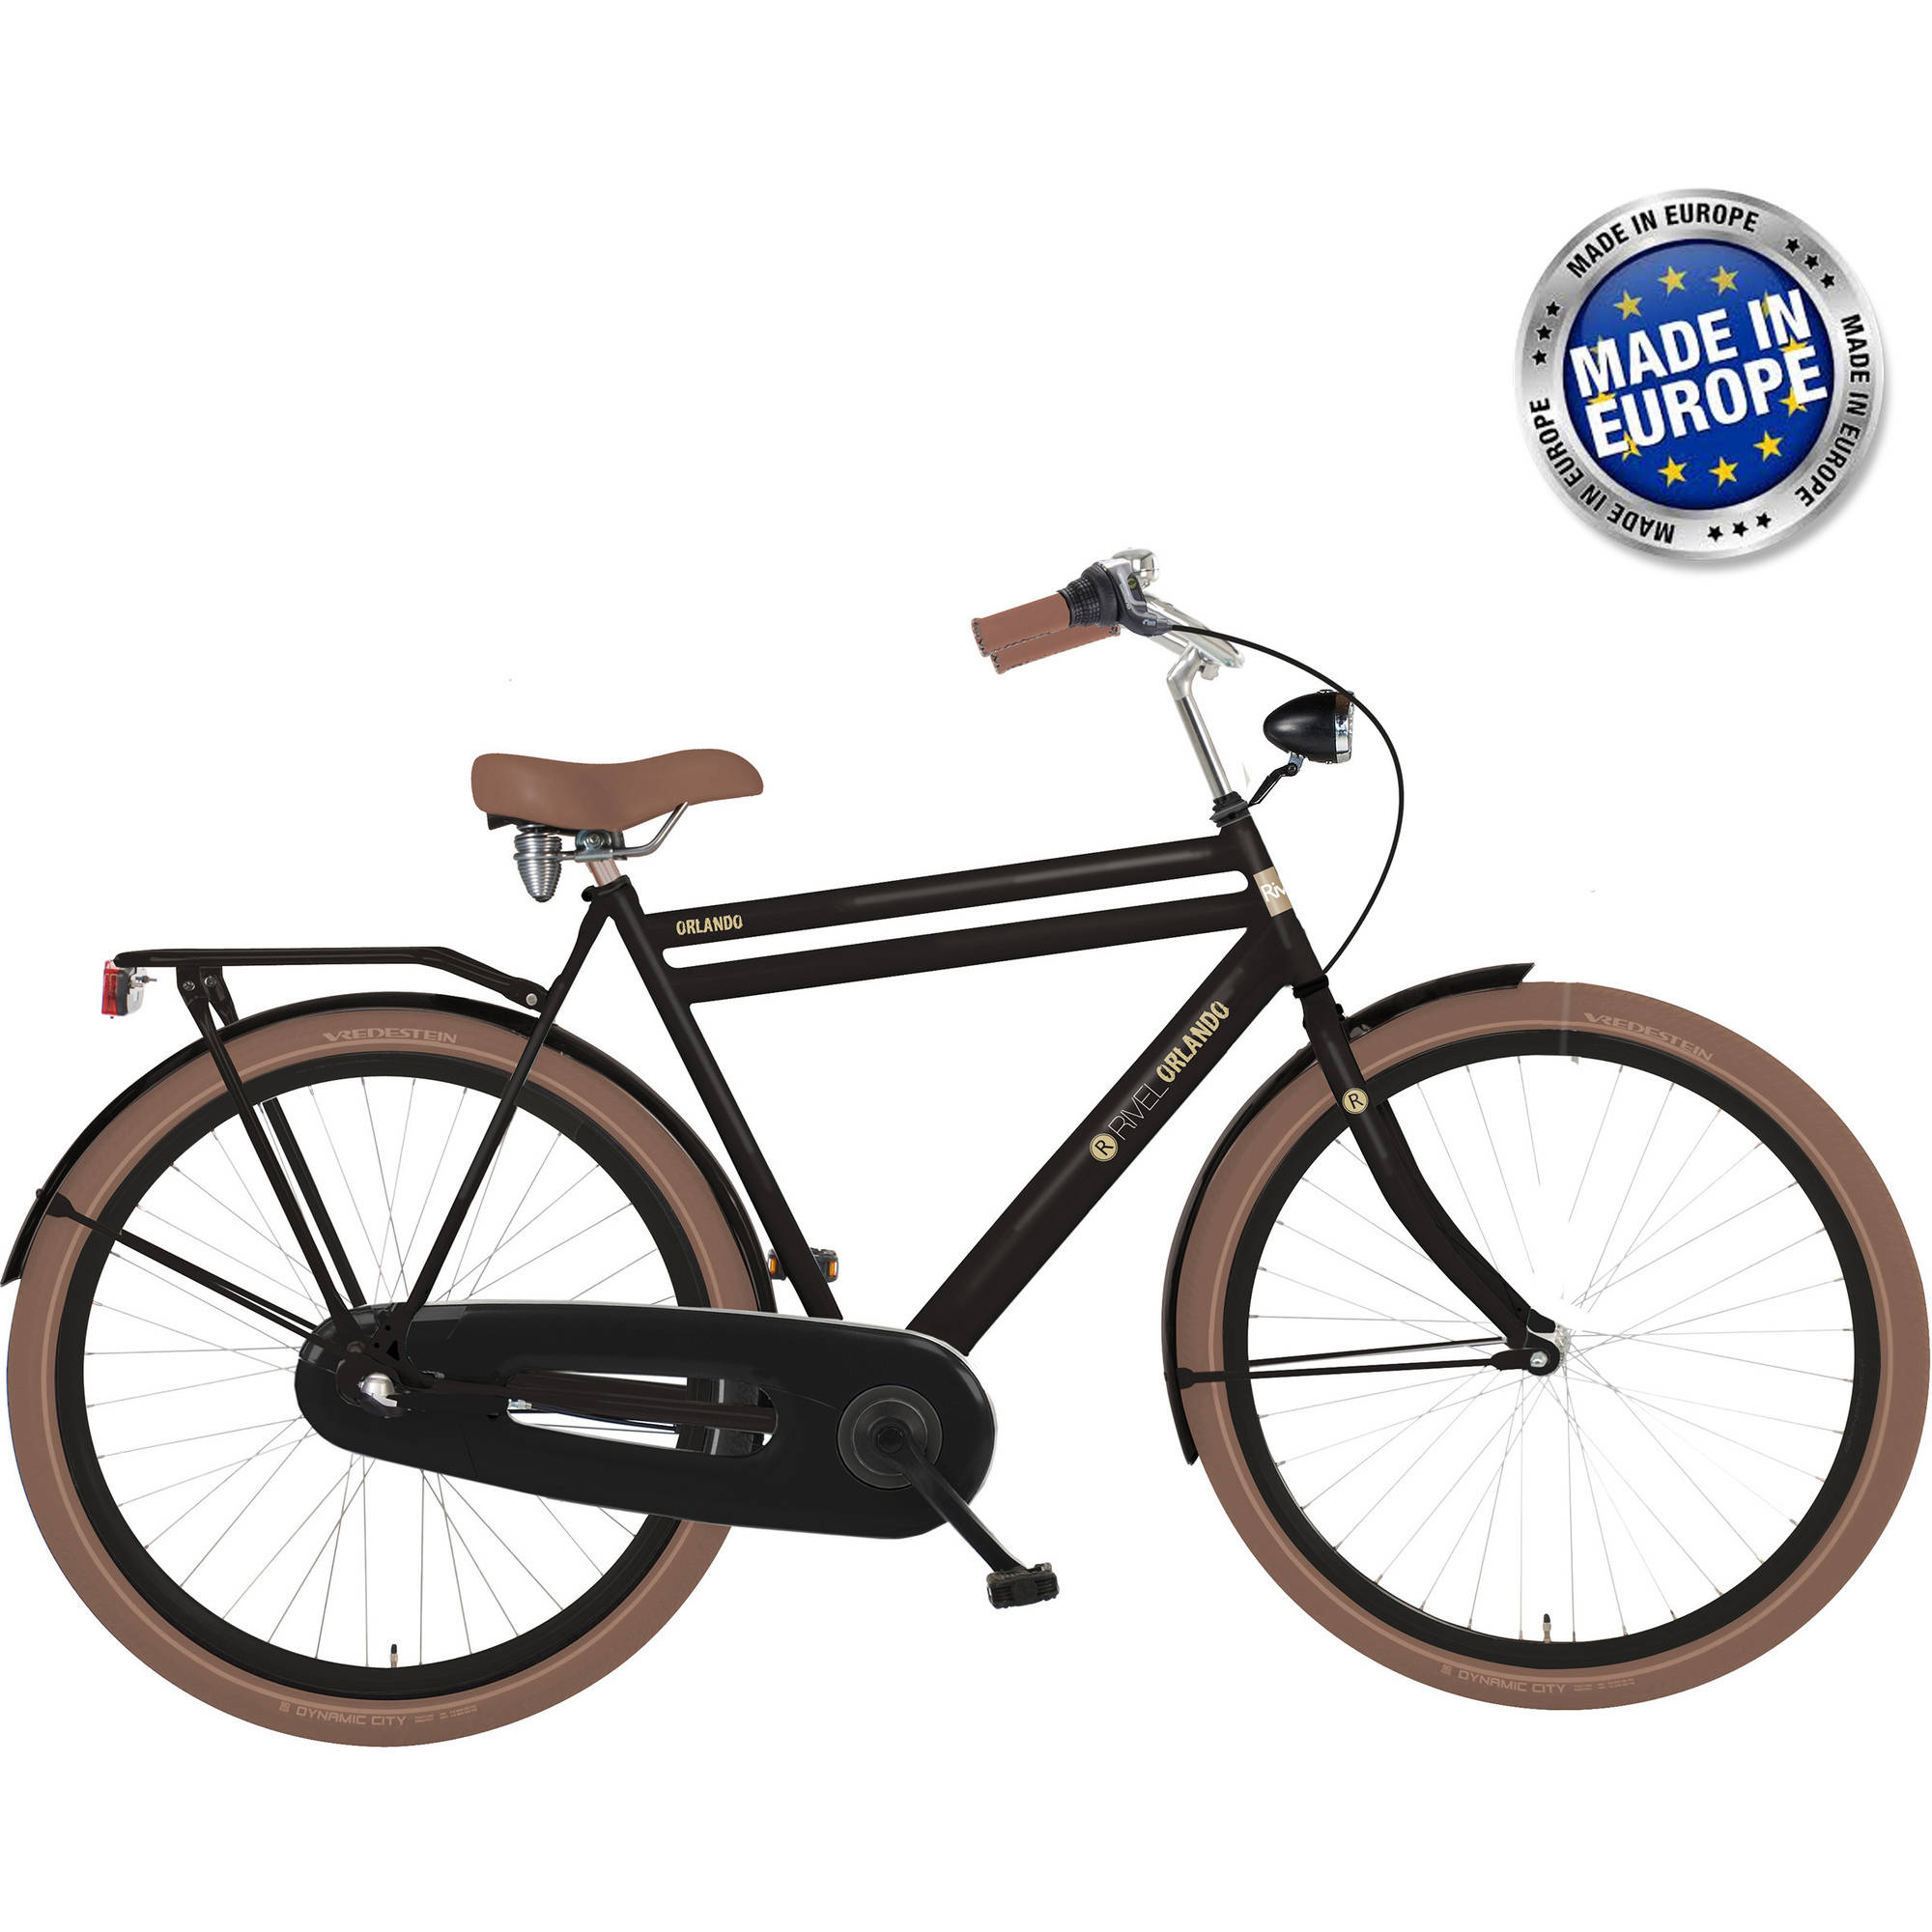 Rivel Orlando M 700C Black Nexus 3 City Dutch Bicycle